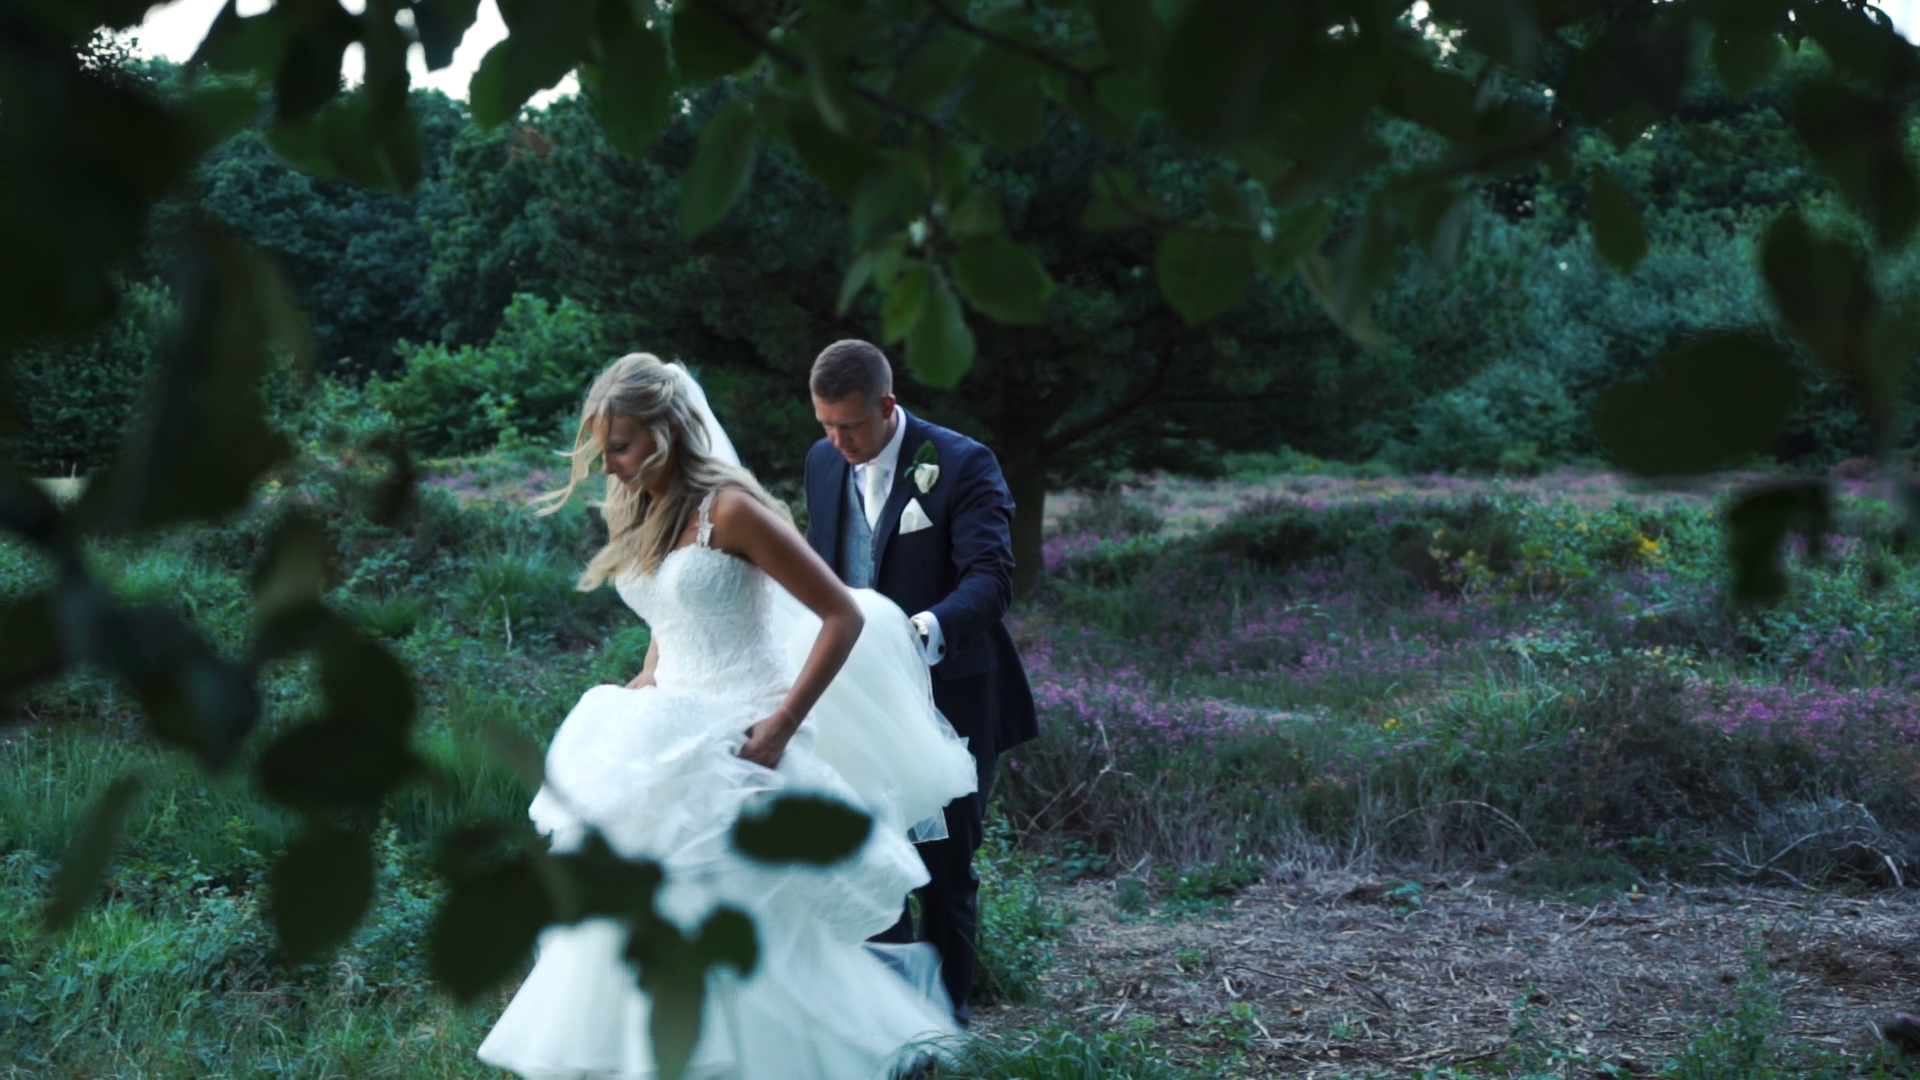 Devon wedding films / cornwall wedding films / uk wedding films - uk wedding films